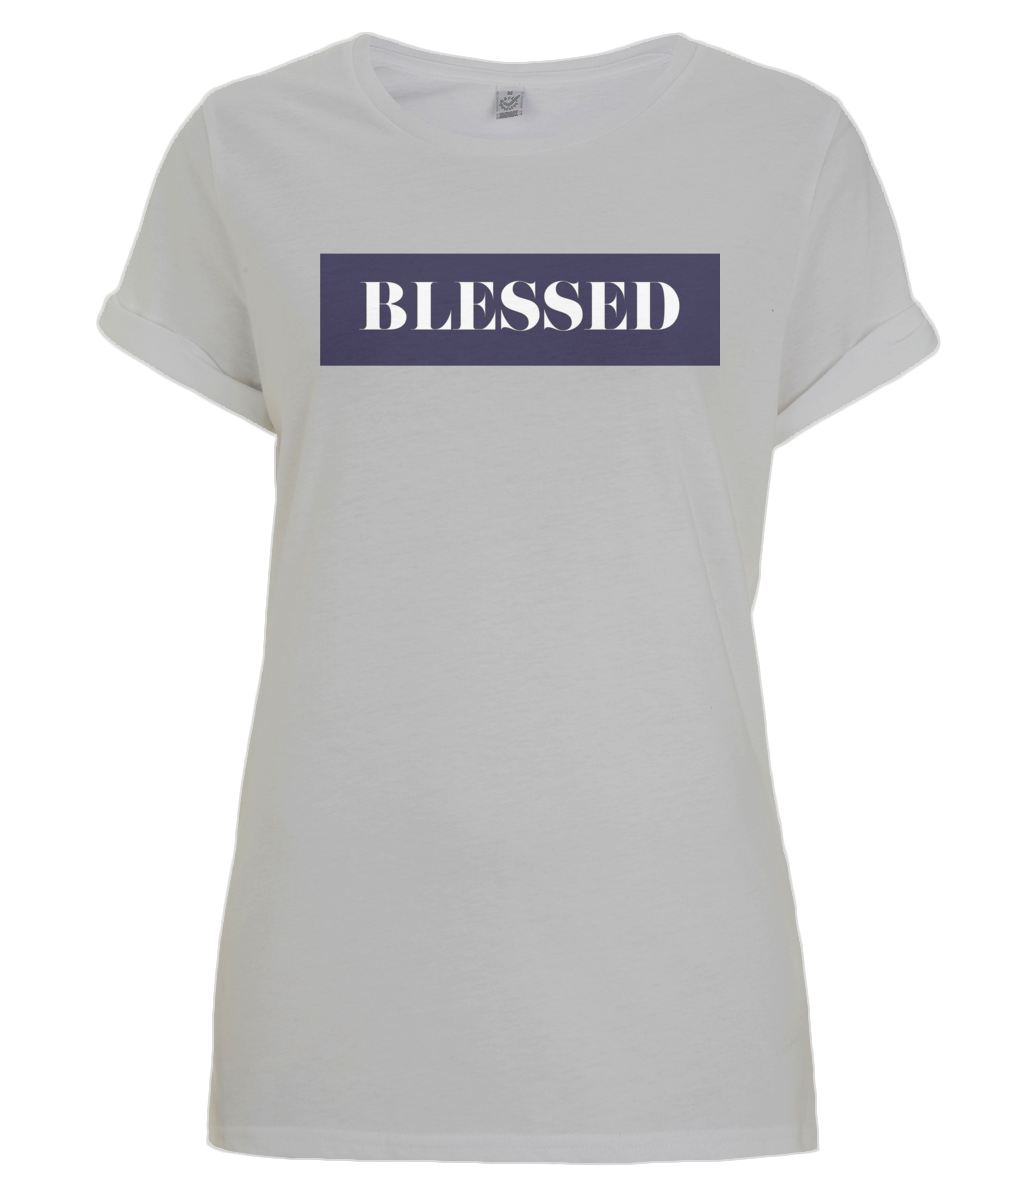 Women's Rolled Sleeve Blessed T-Shirt